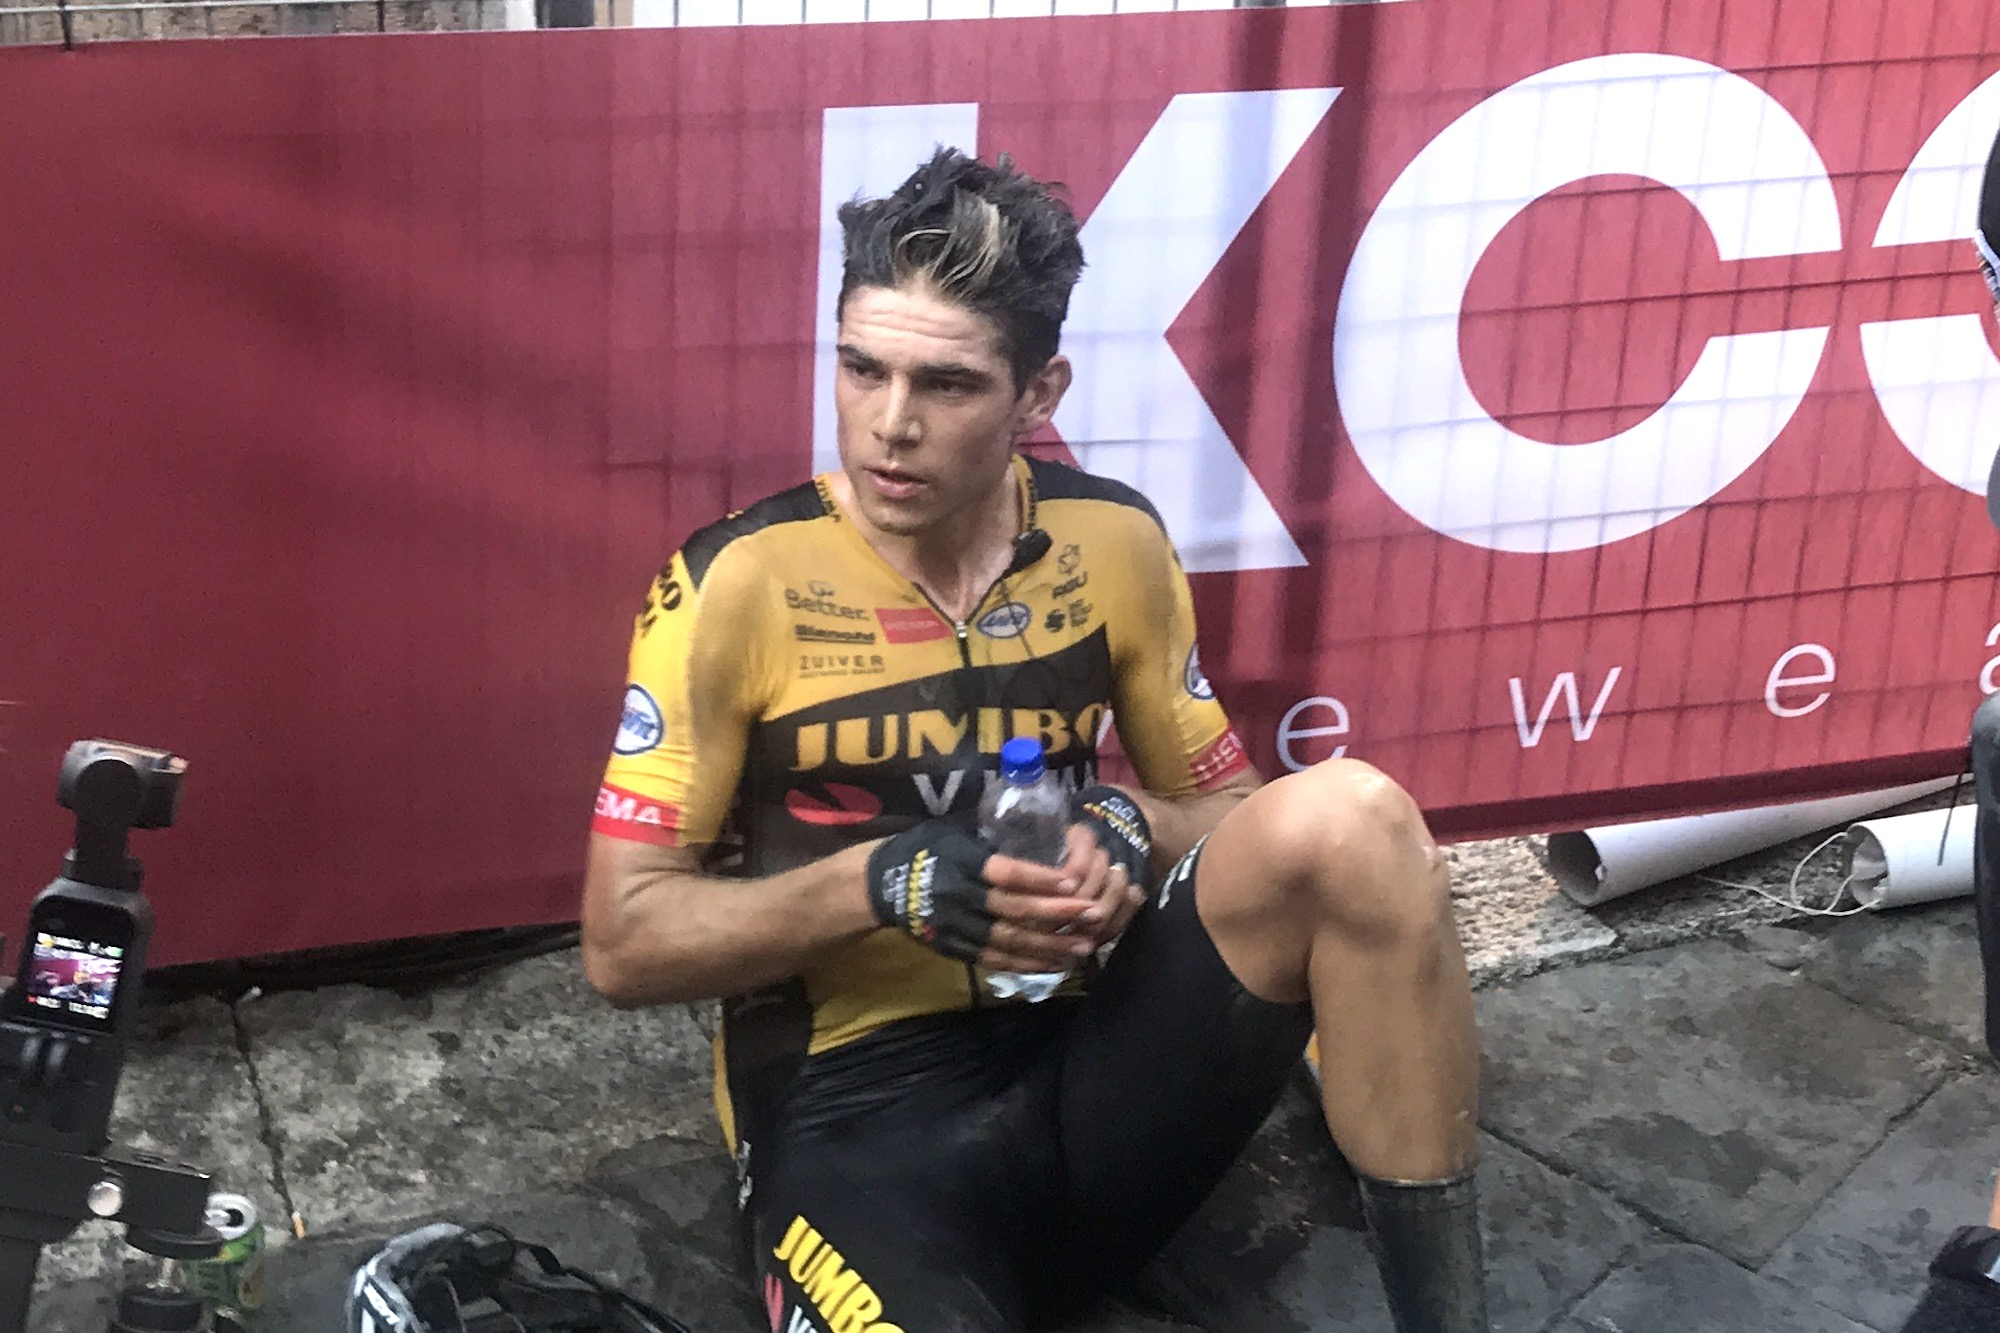 'It's survival of the fittest': Wout van Aert marks anniversary of leaving hospital after Tour injury with Strade Bianche title